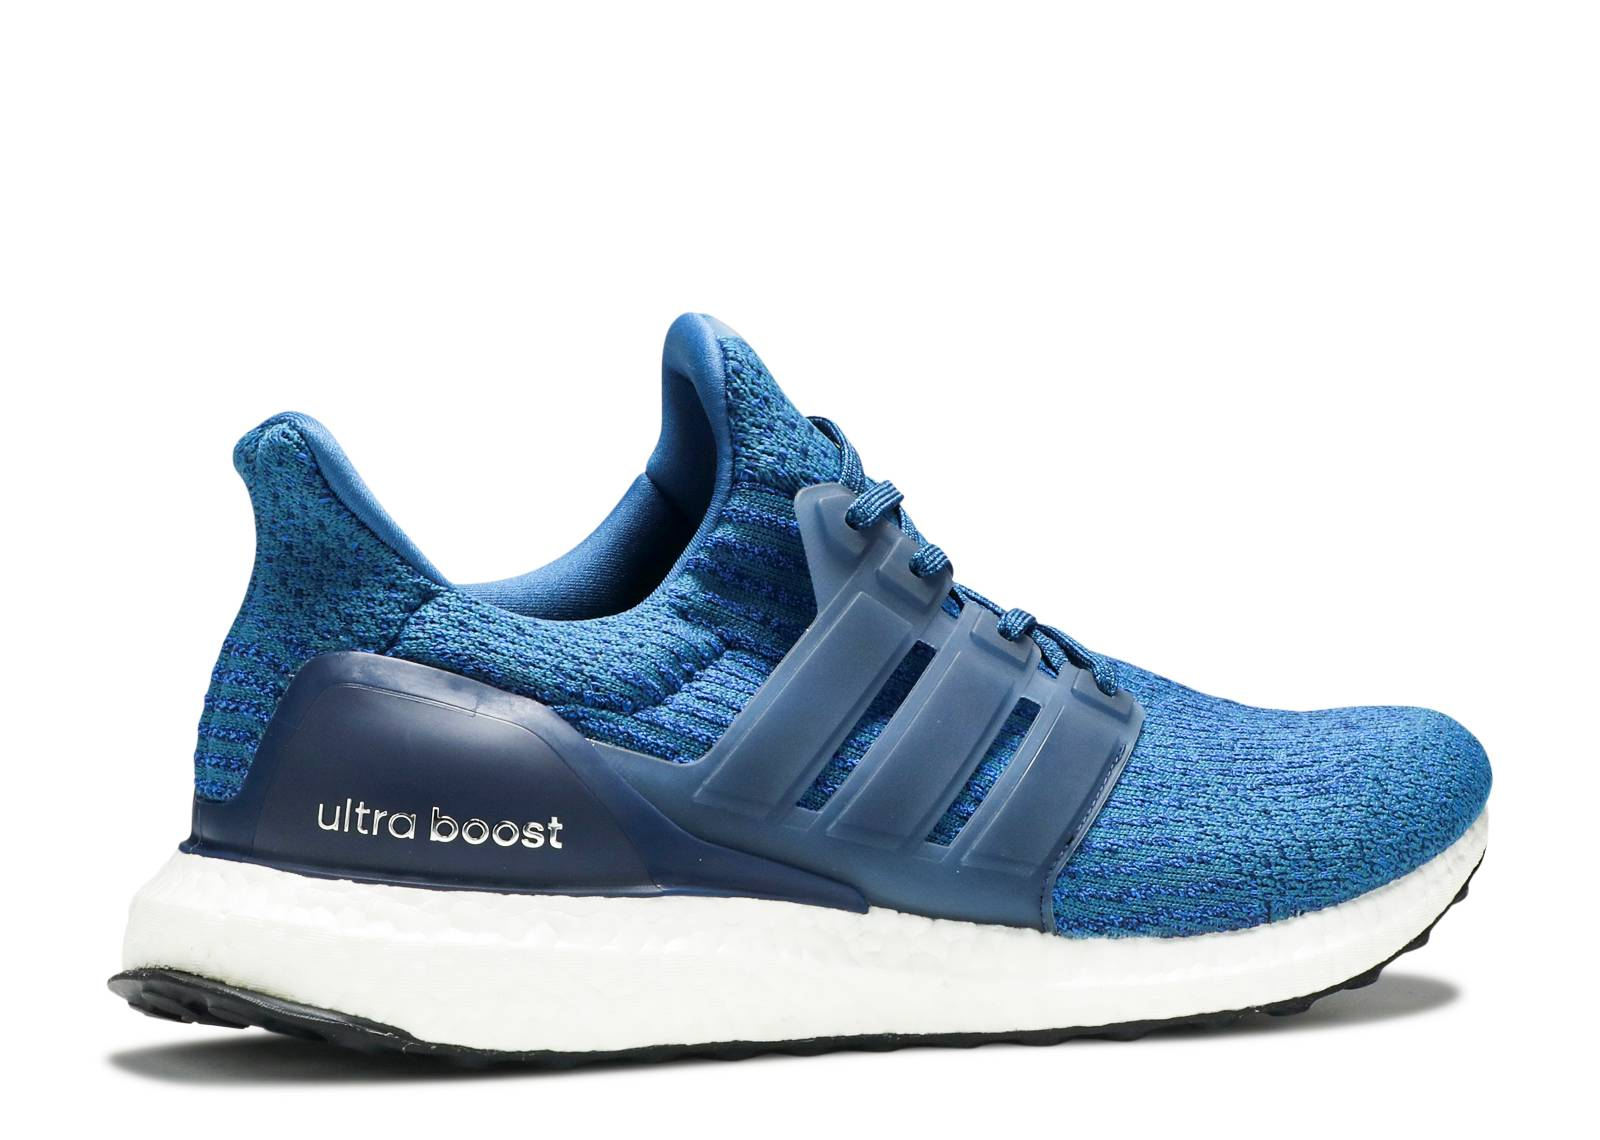 new arrival eee1d 59198 Adidas Ultra Boost 3.0 Royal Blue - 3